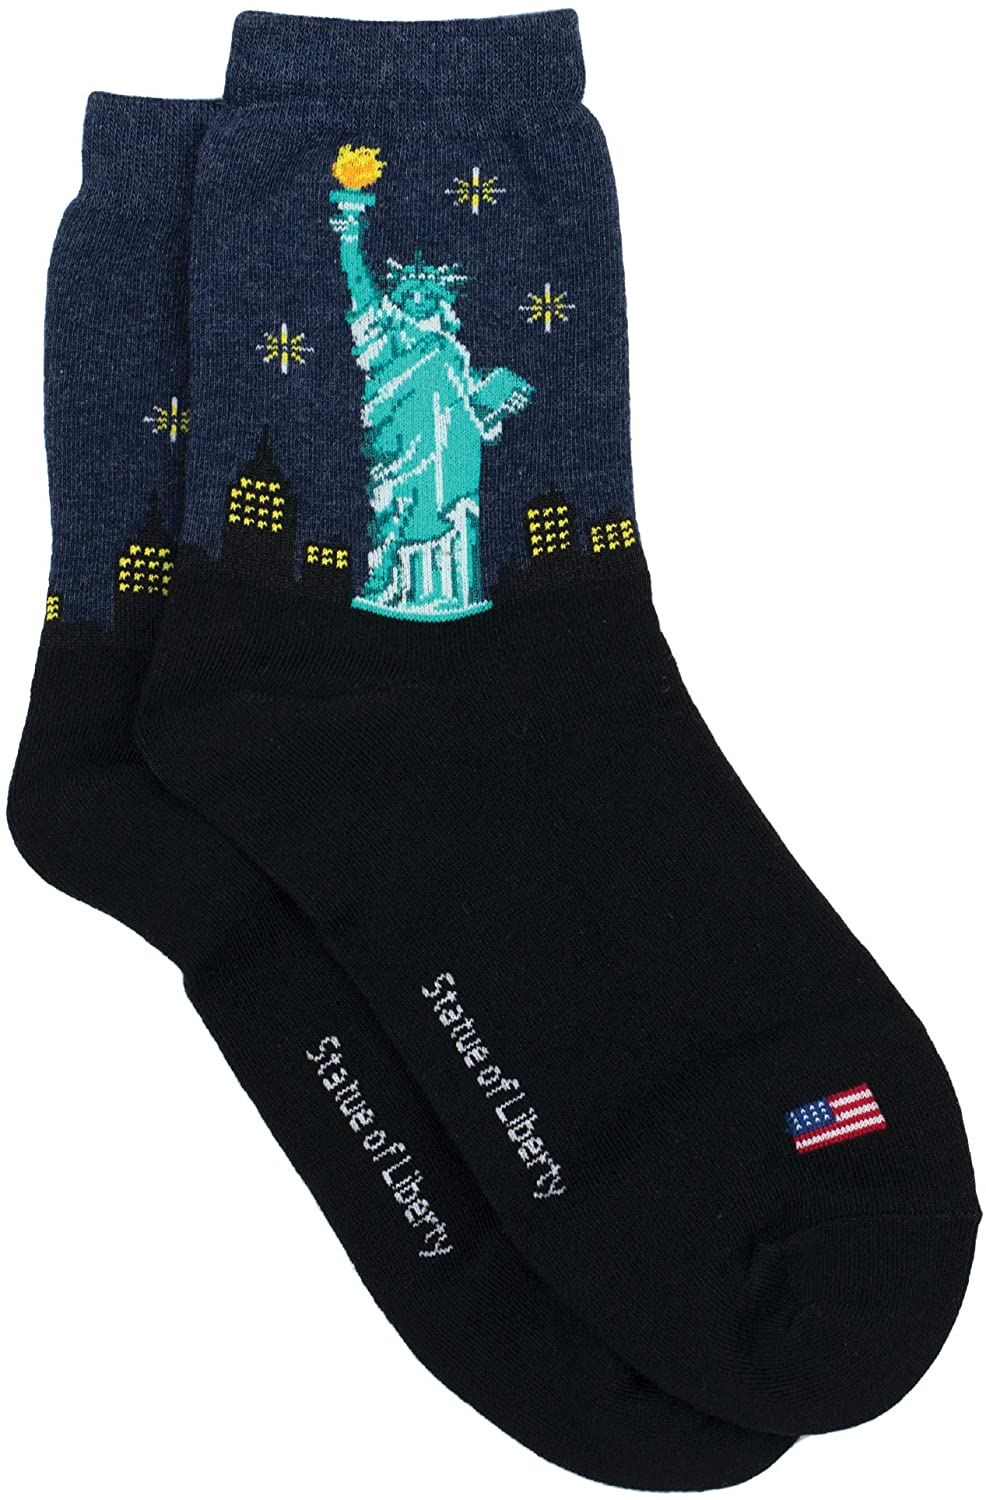 GGorangNae - Statue of Liberty Women's Ankle Socks by Bamboo Trading Company